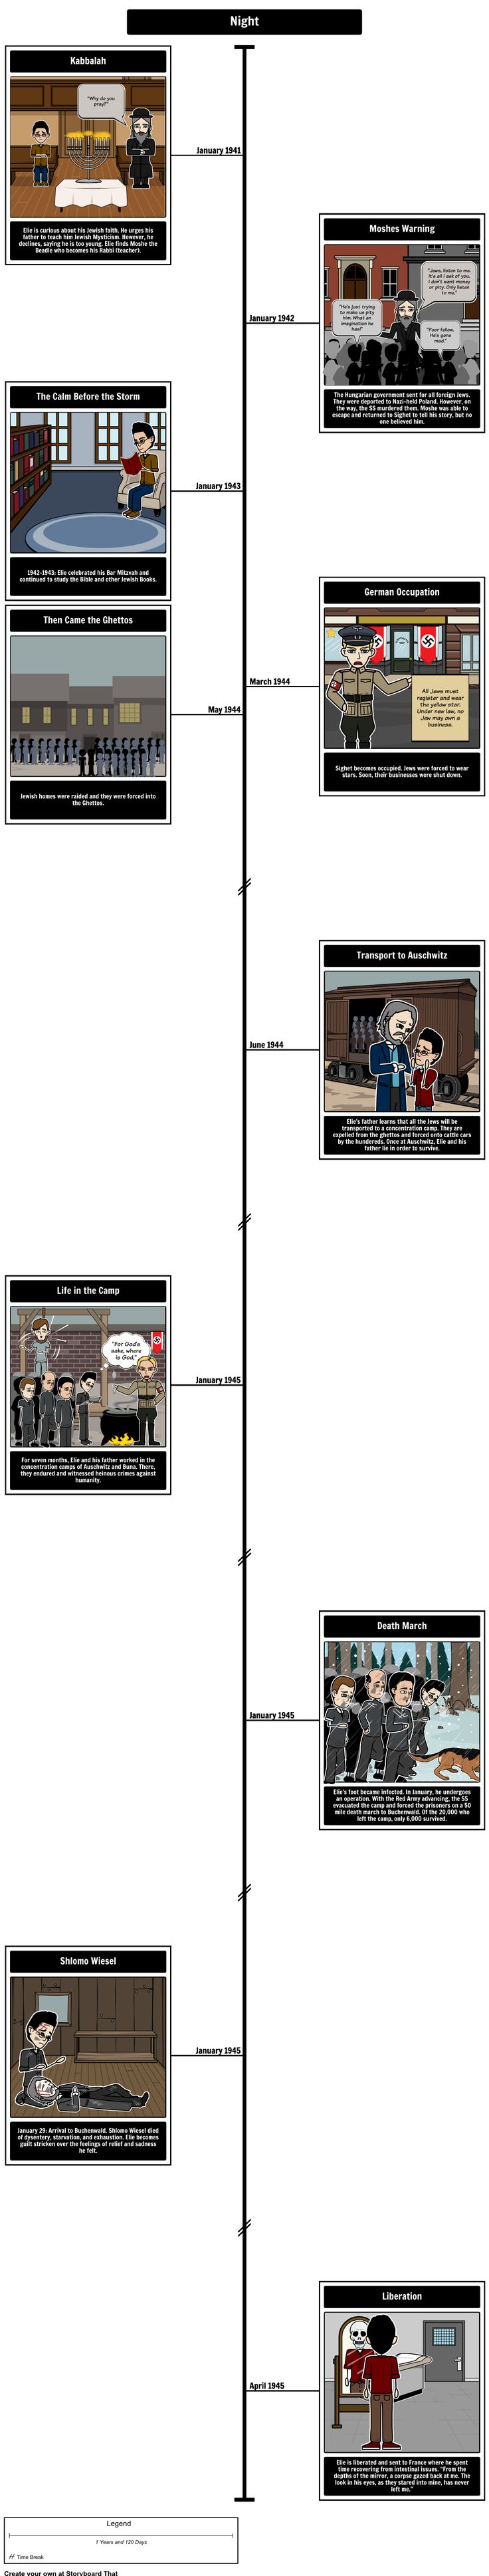 timeline of holocaust The timeline section of a teacher's guide to the holocaust covers events from 1918 to the present in words, photographs, and documents.